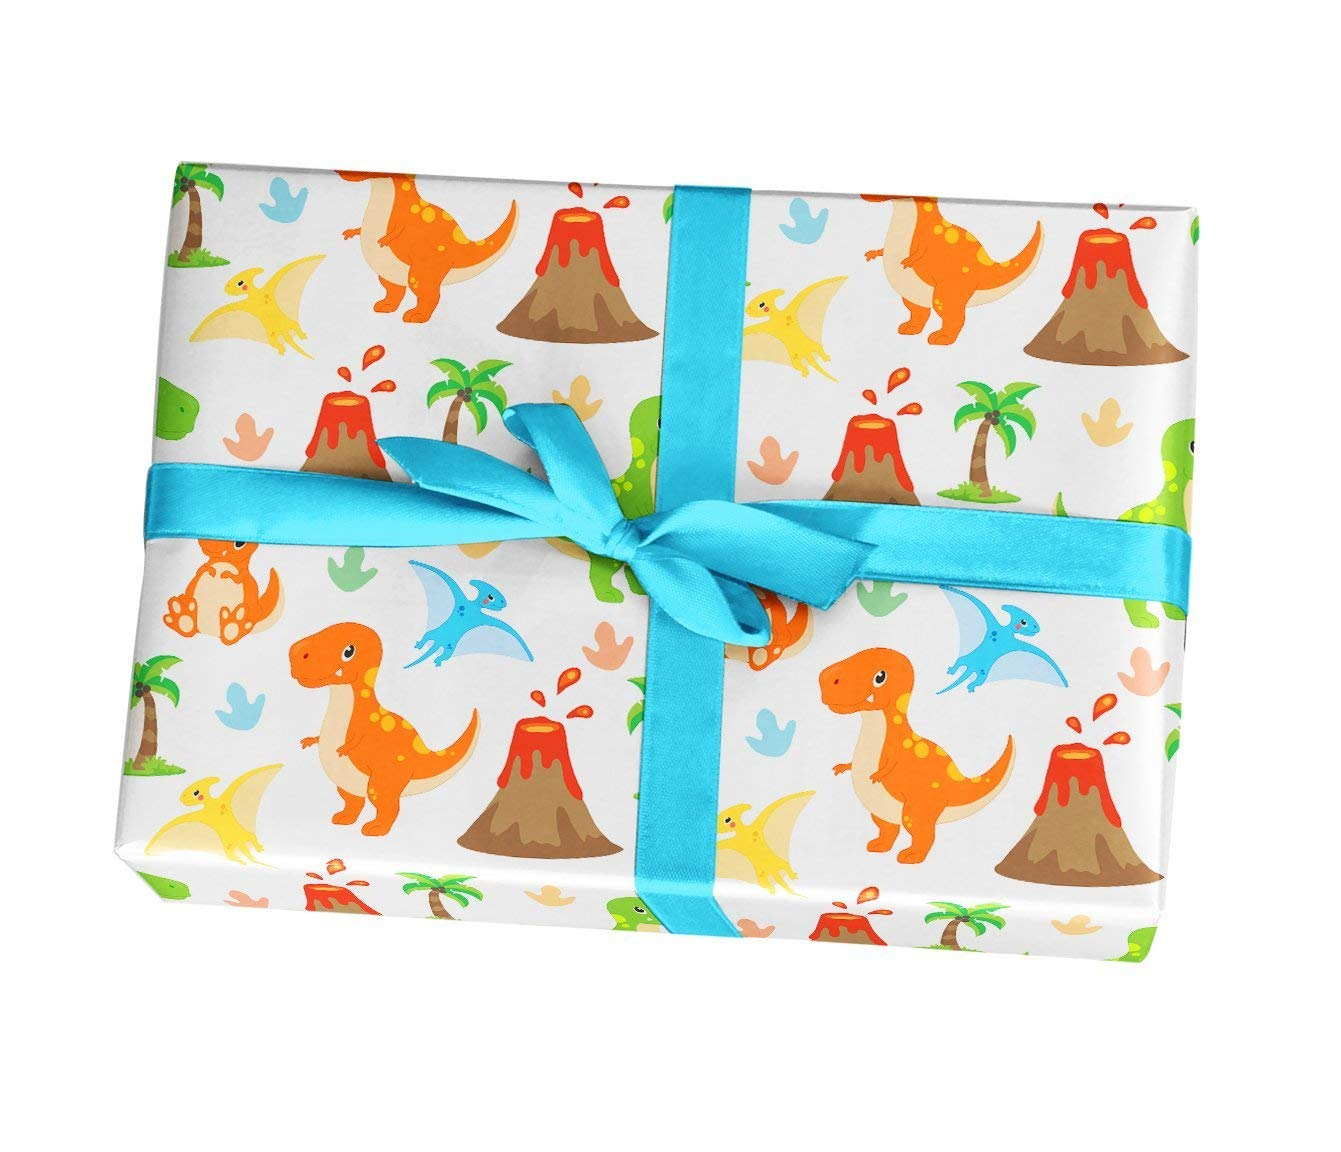 Dino wrapping paper sheets - 10 pack of 11x17